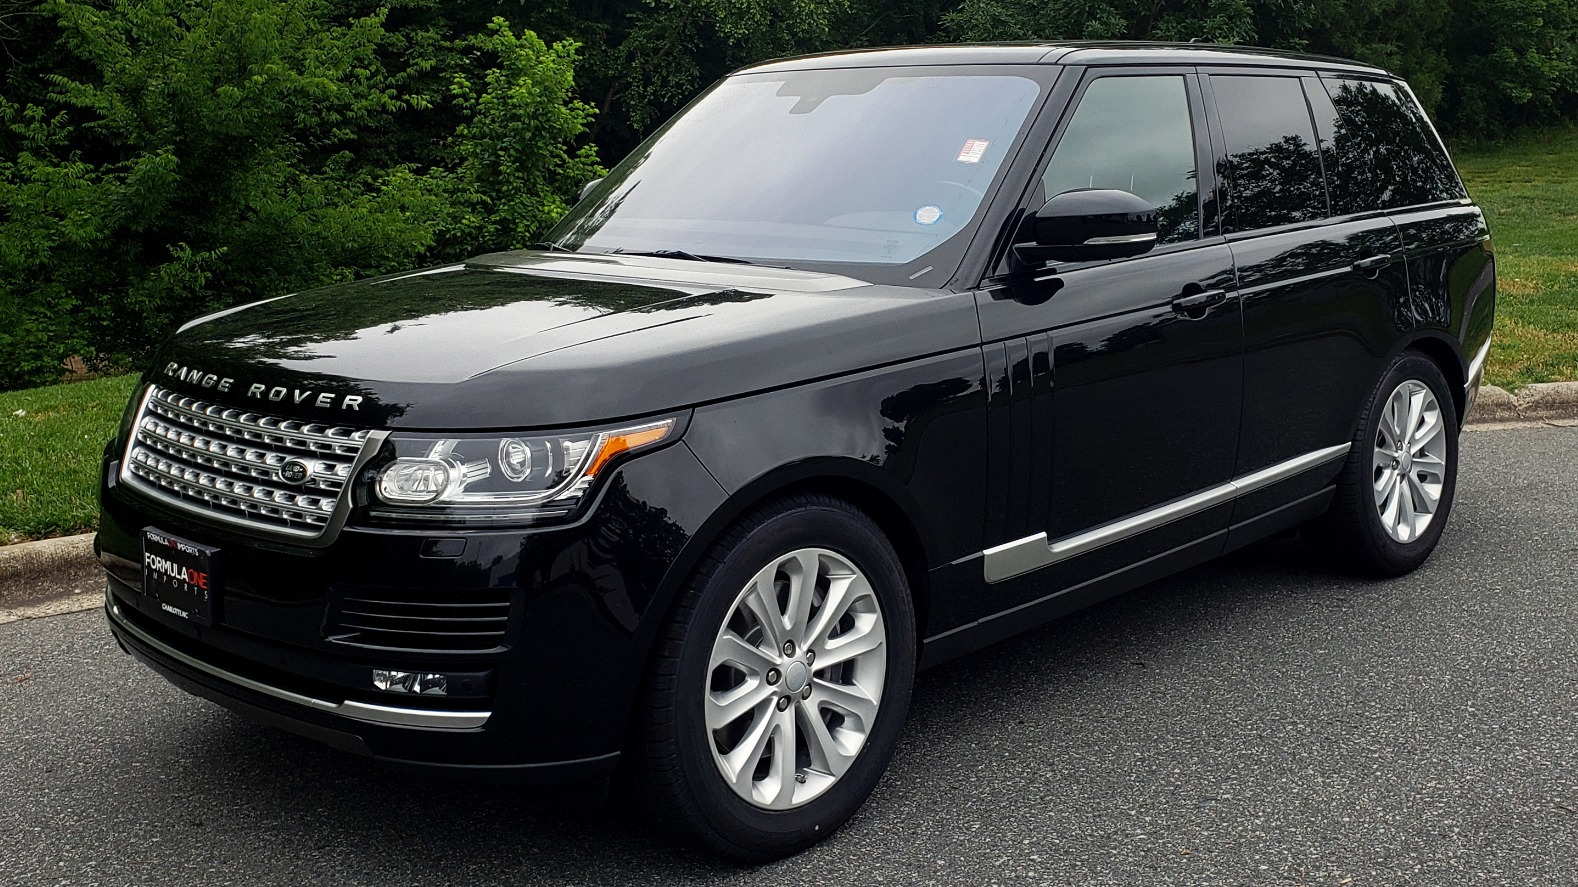 Used 2016 Land Rover Range Rover HSE 3.0L SC V6 / NAV / PANO-ROOF / VENT SEATS / REARVIEW / BLIND SPOT for sale Sold at Formula Imports in Charlotte NC 28227 1